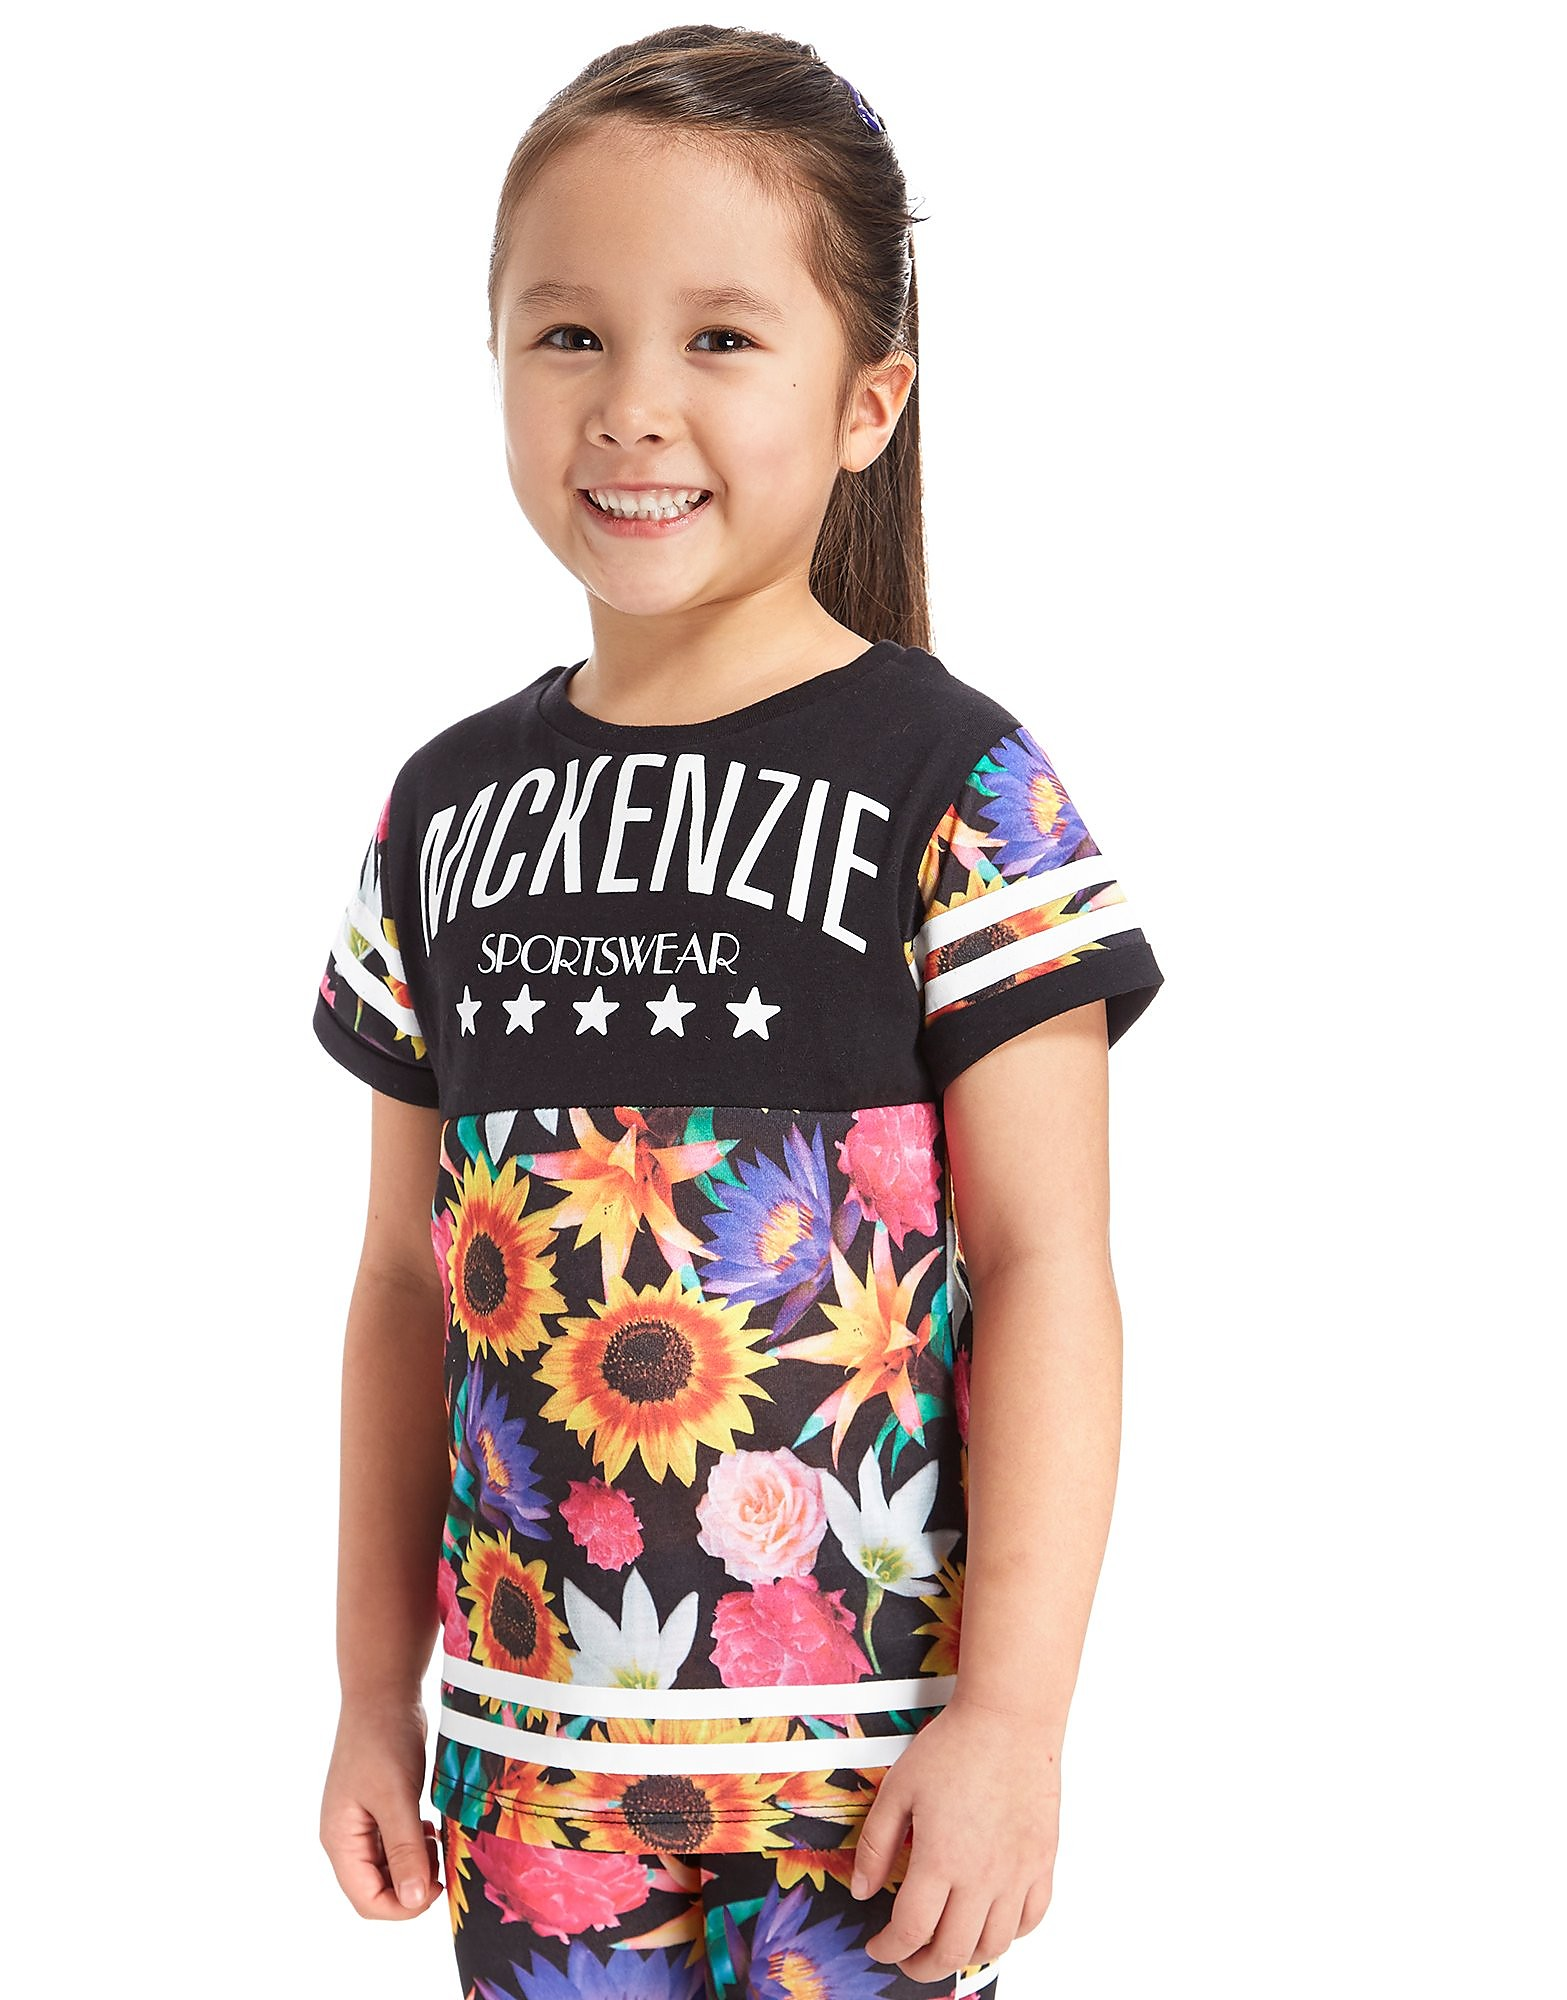 McKenzie Girls' Violet T-Shirt Children